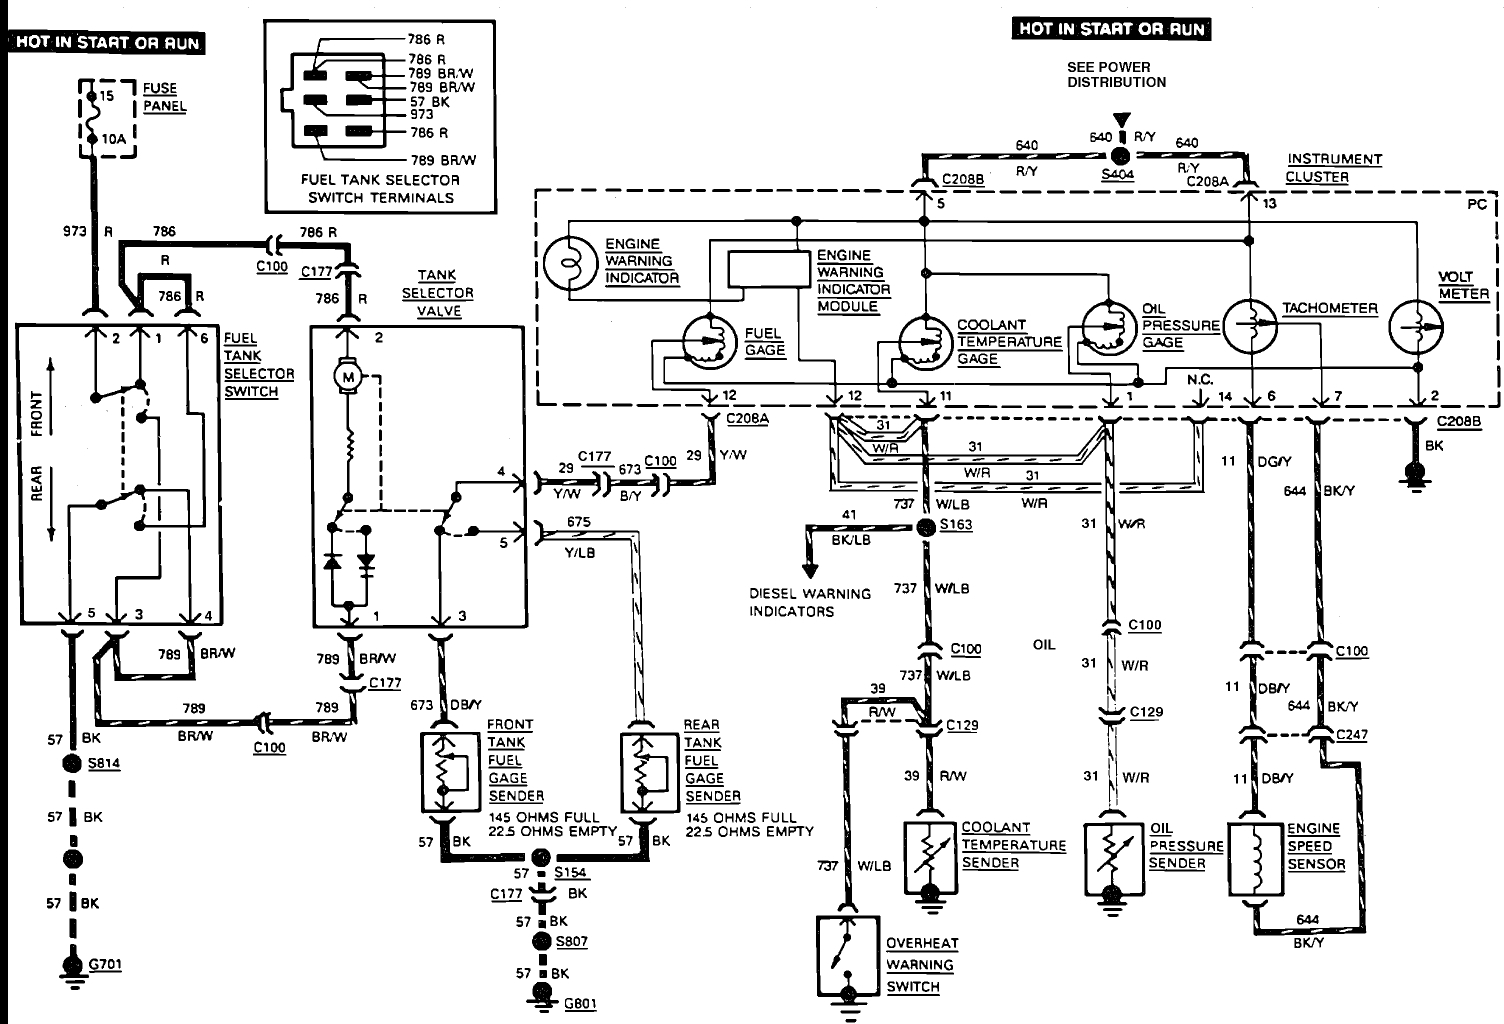 fuse schematic for a 2005 f 150